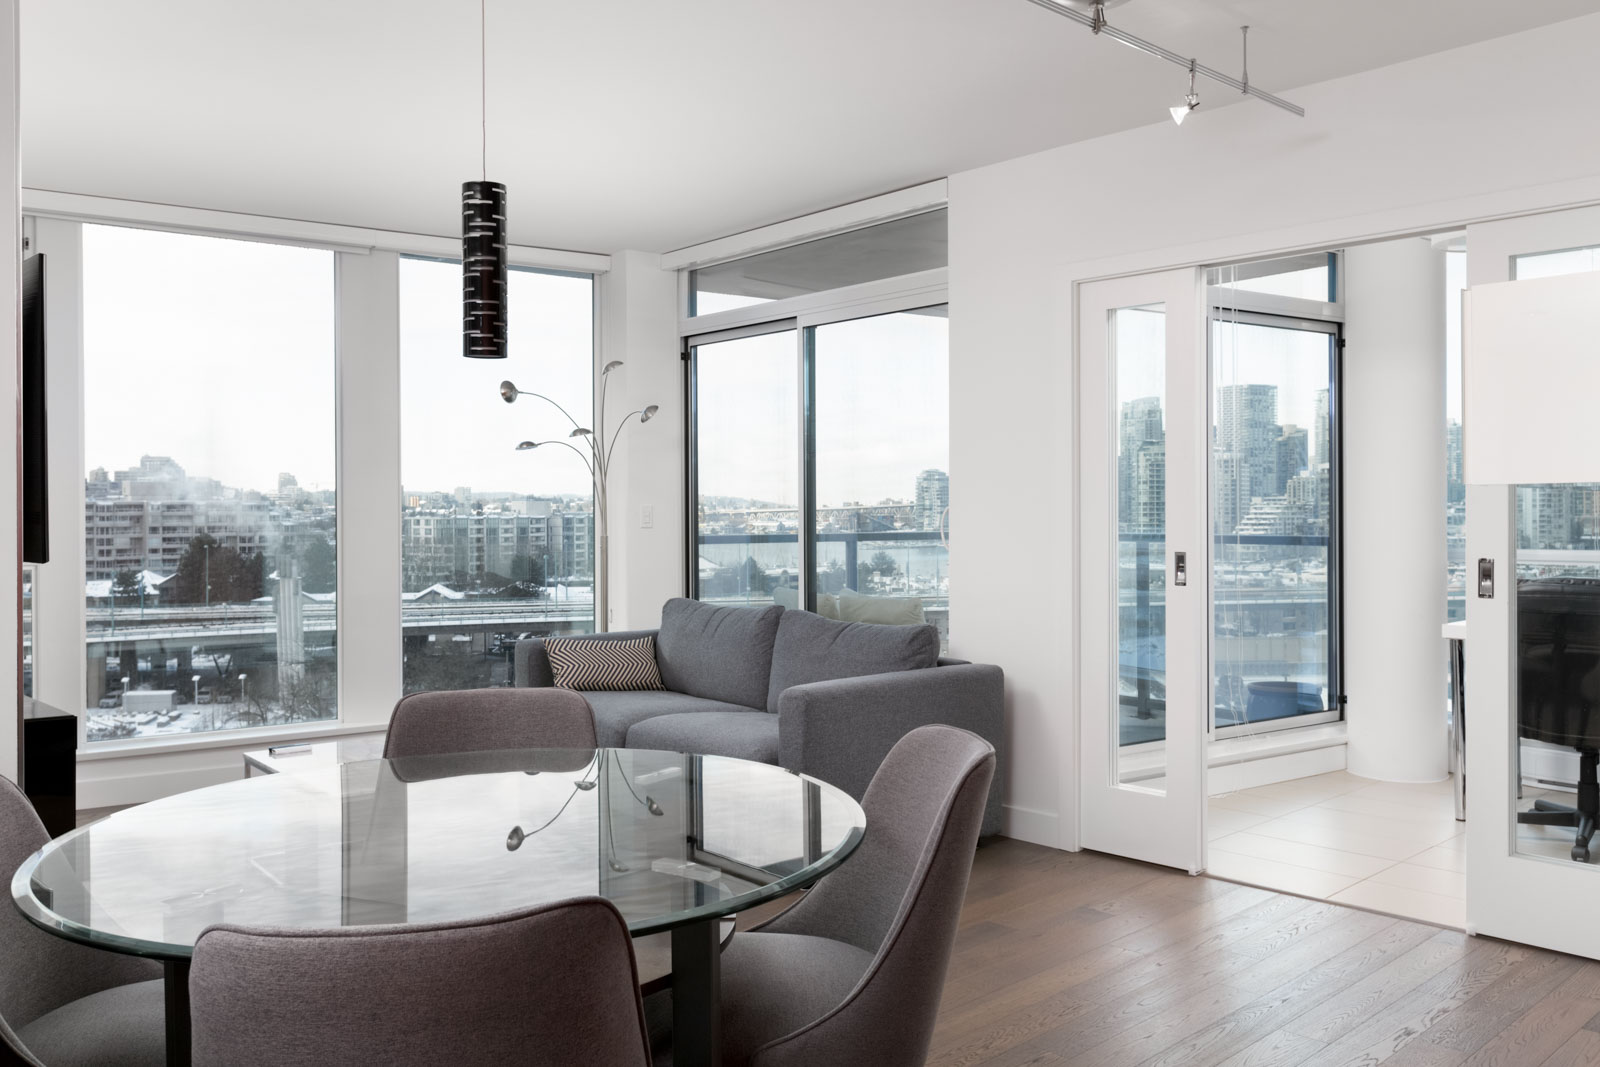 glass dining table in condo living room with floor to ceiling windows in the background with white walls